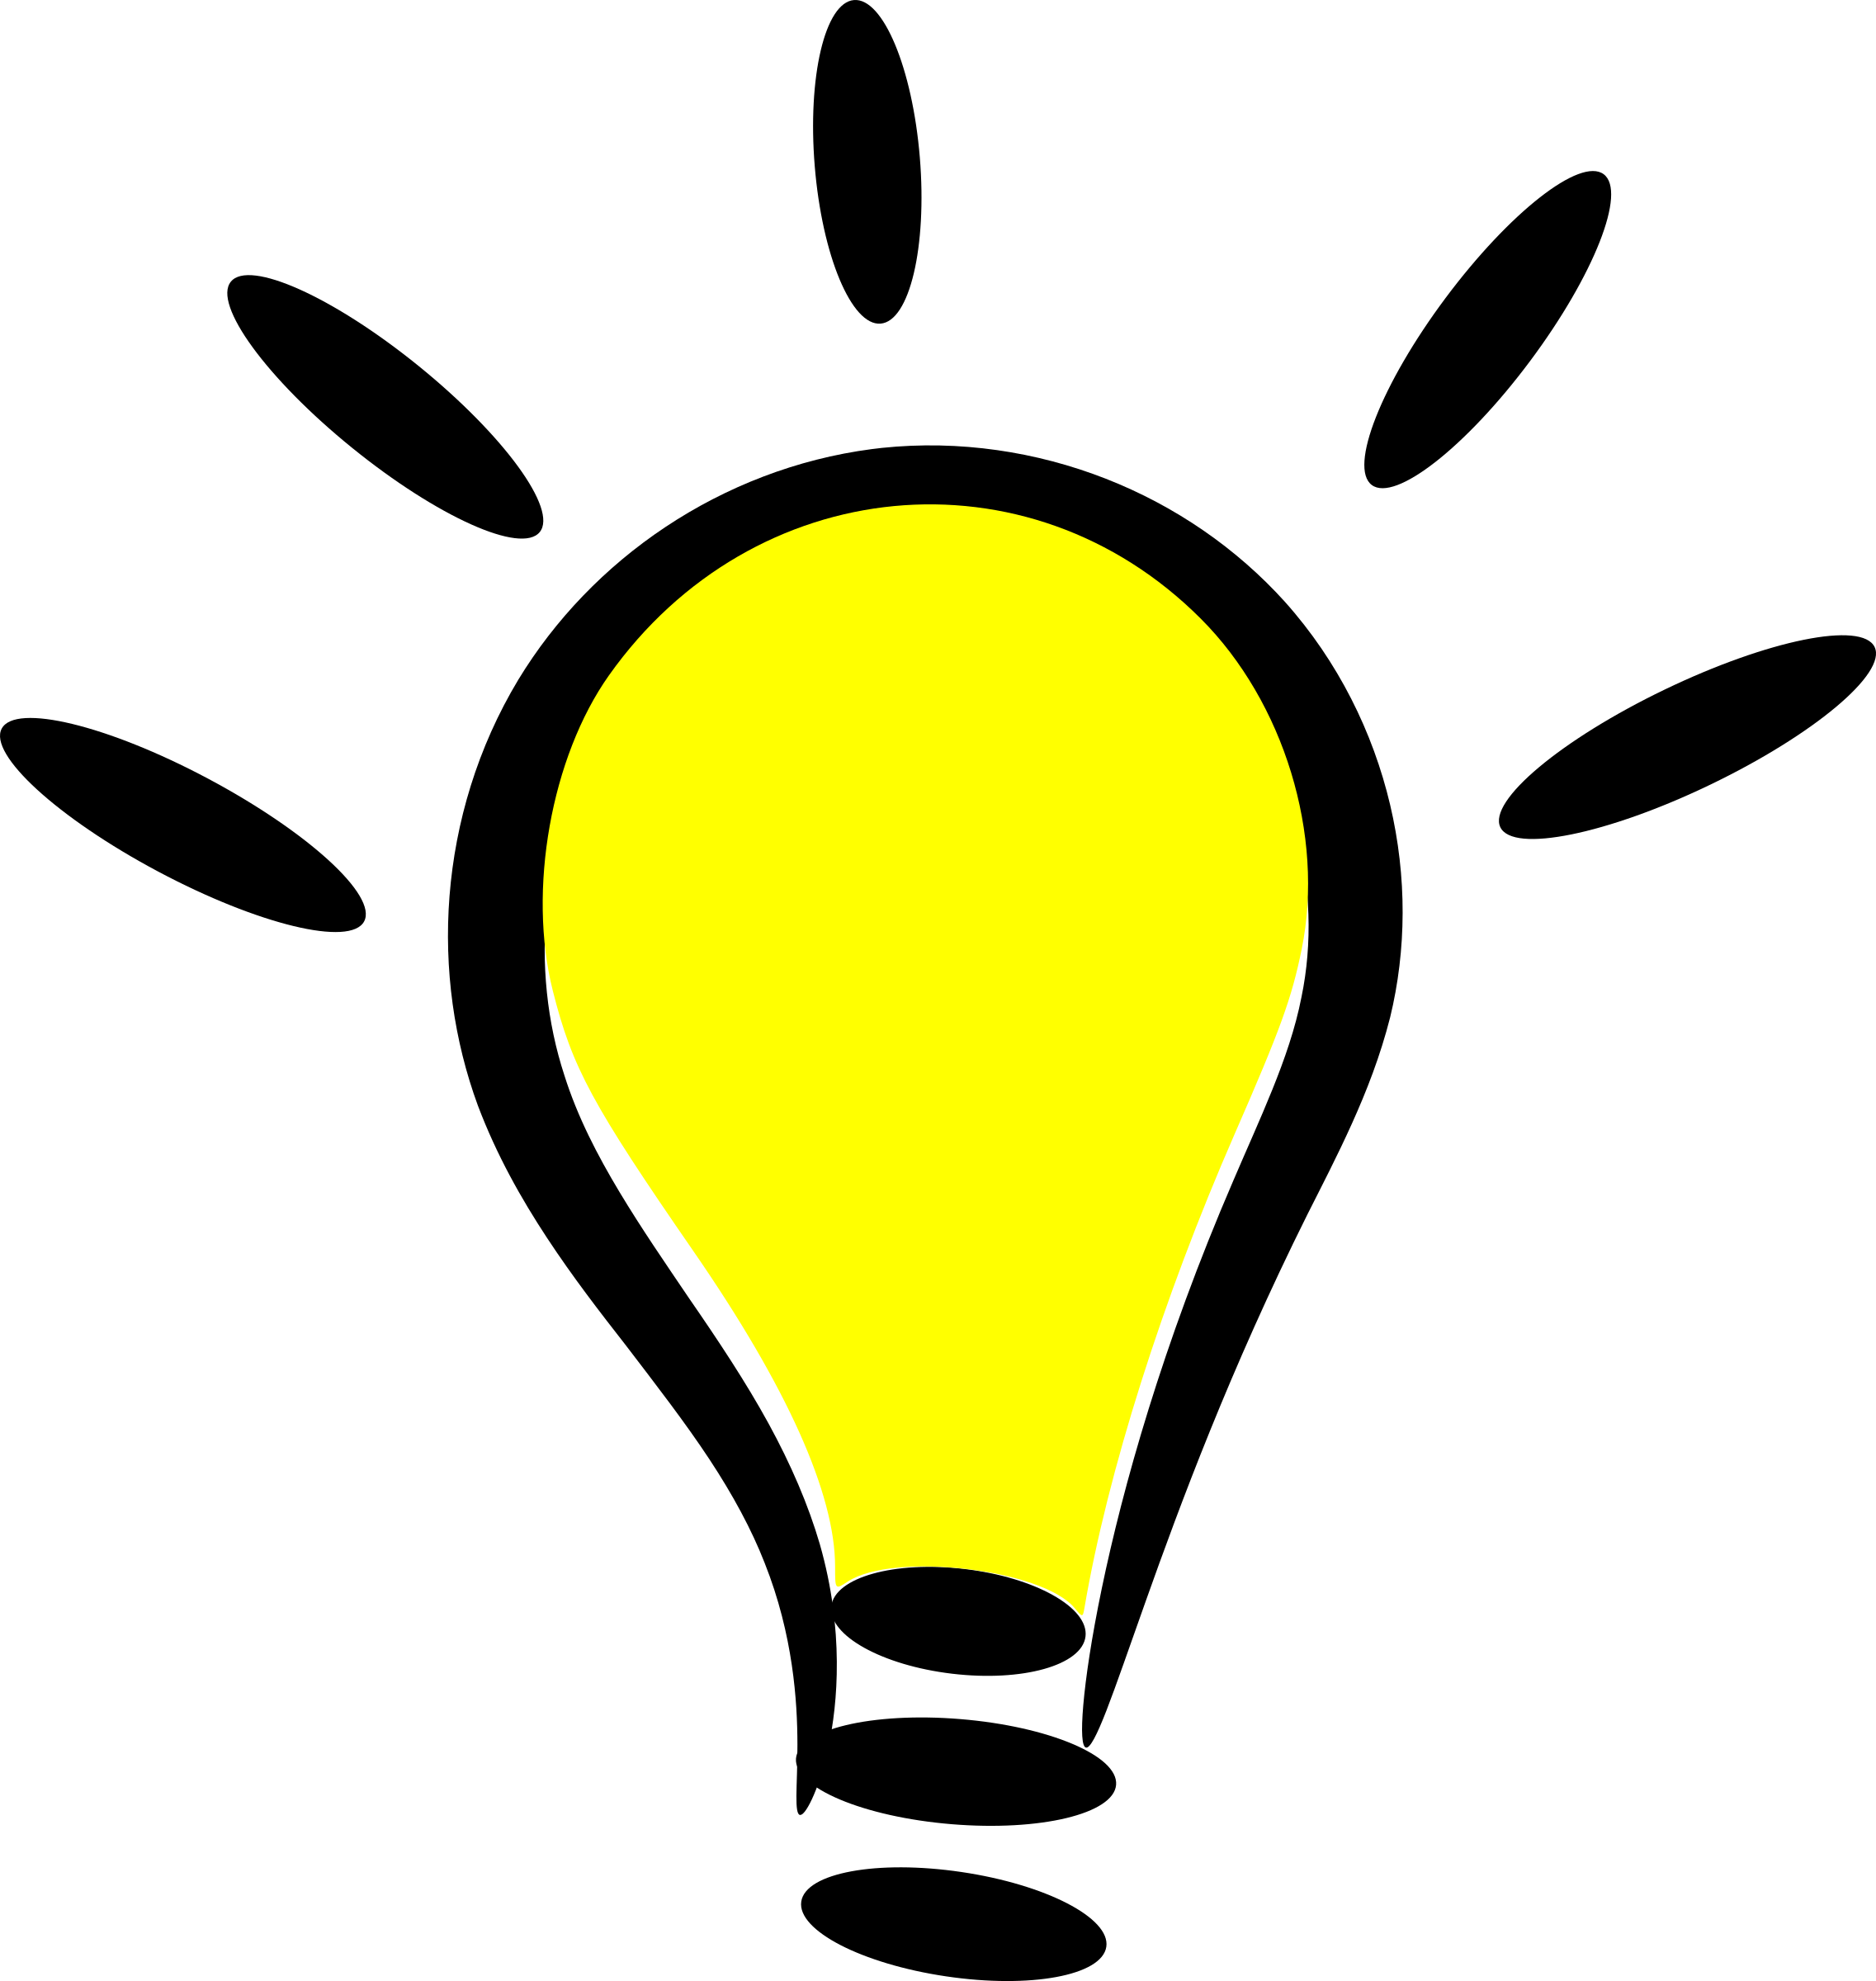 Light Bulb clipart #8, Download drawings